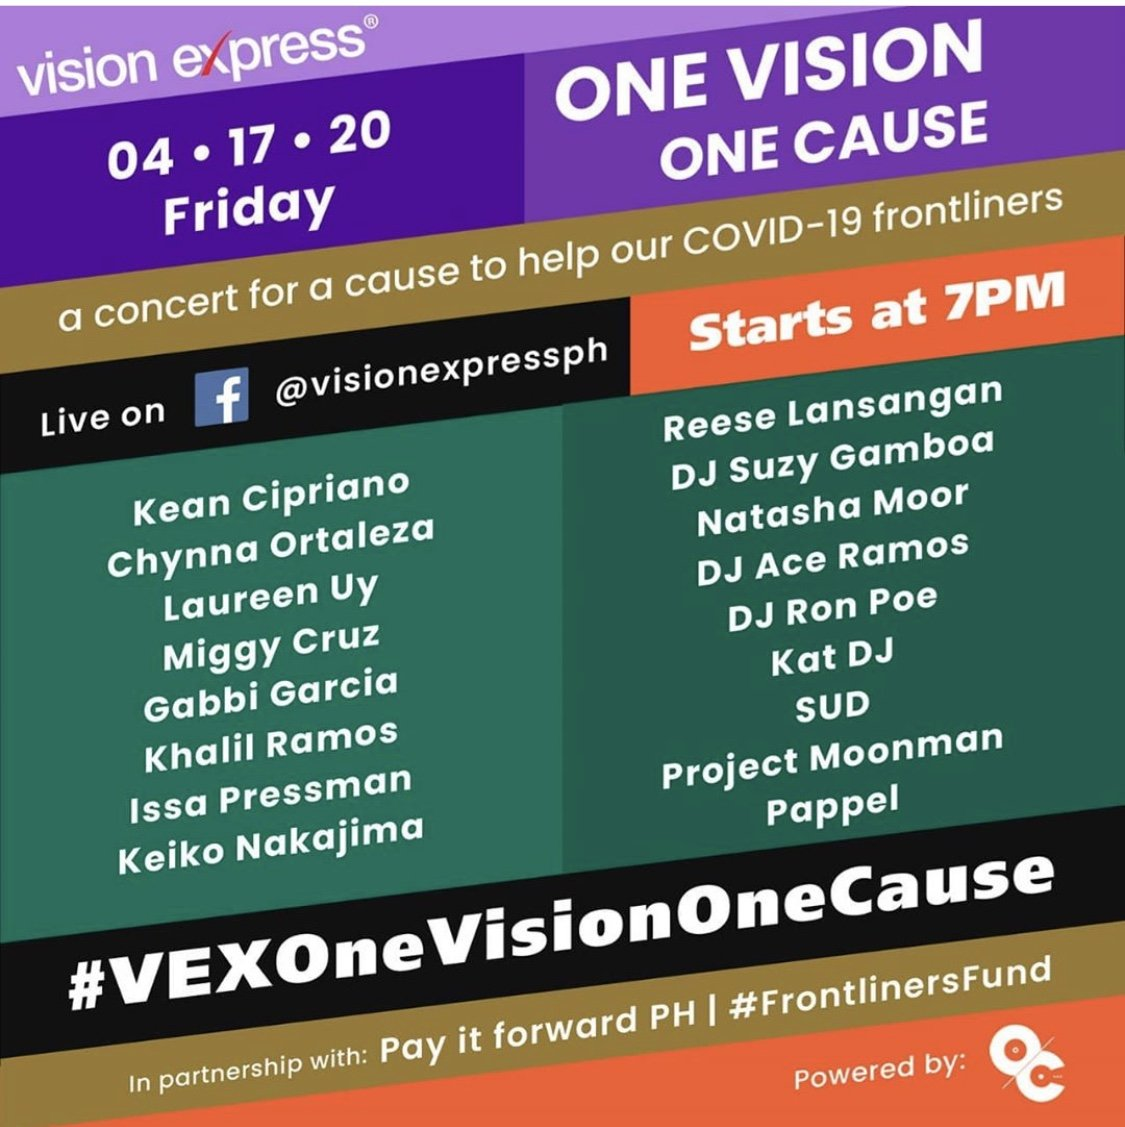 One Vision, One Cause: Concert for a cause to help our Frontliners - Vision Express Philippines